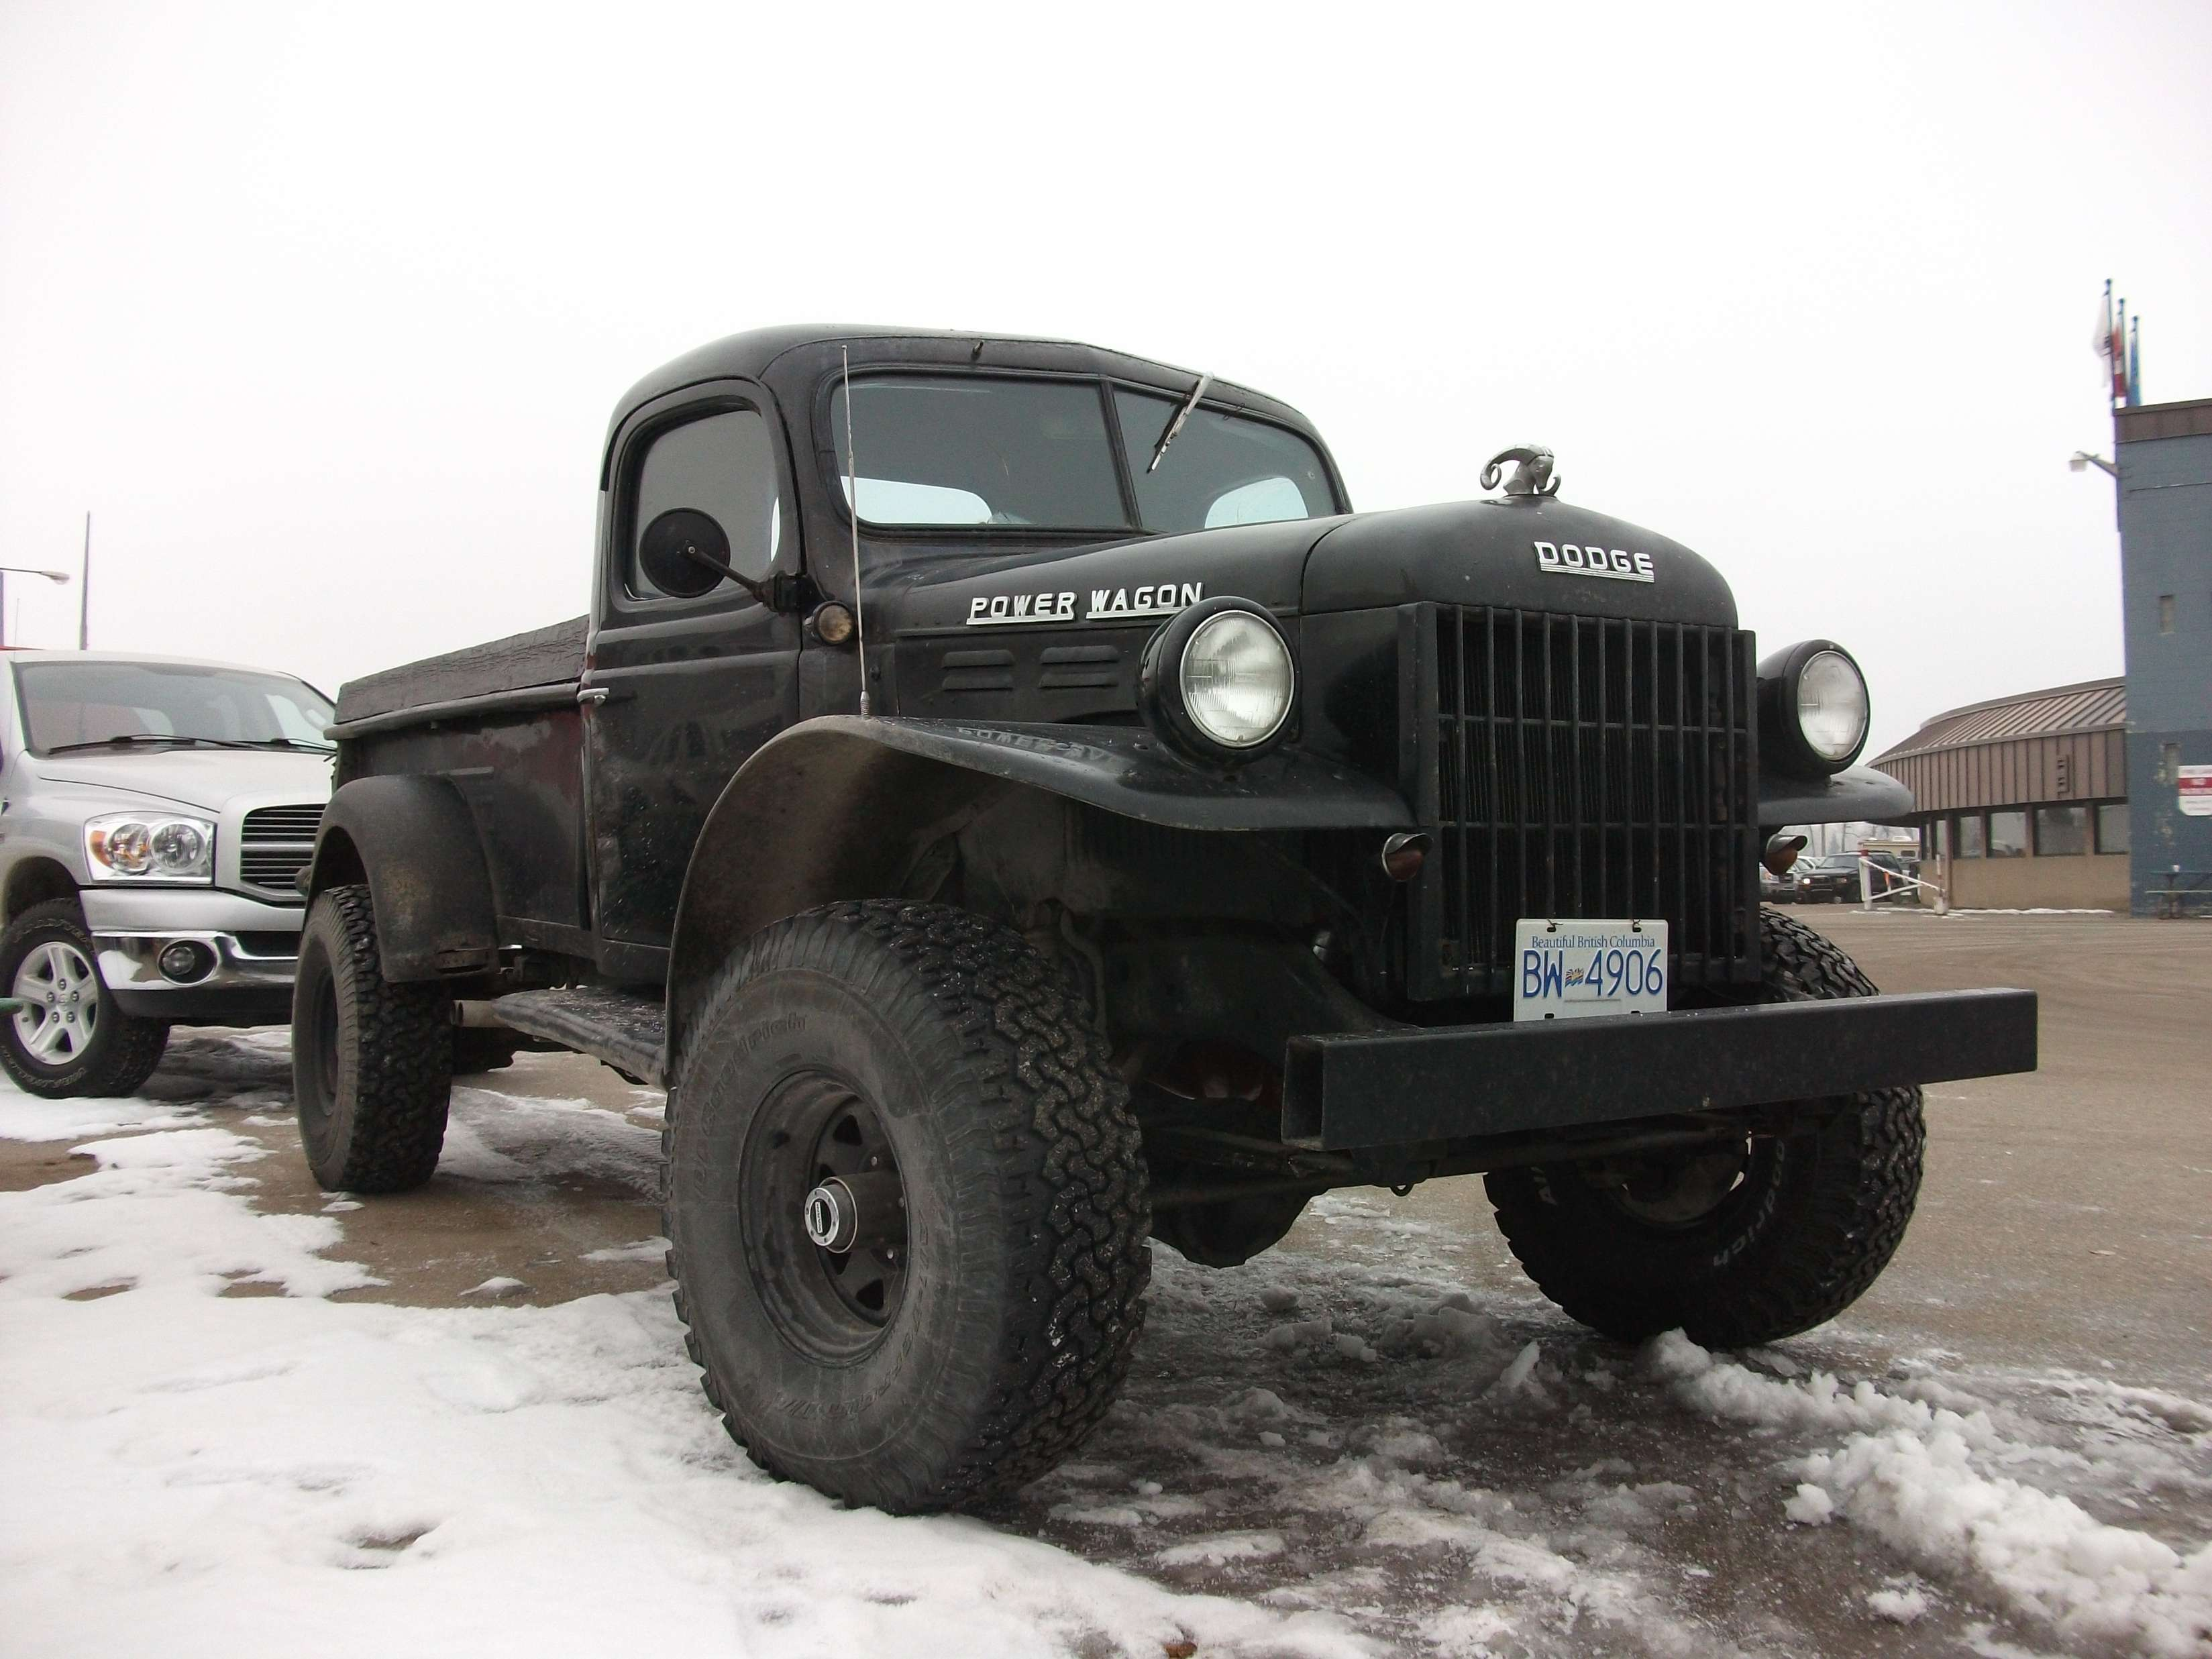 Dodge Power Wagon #7675109